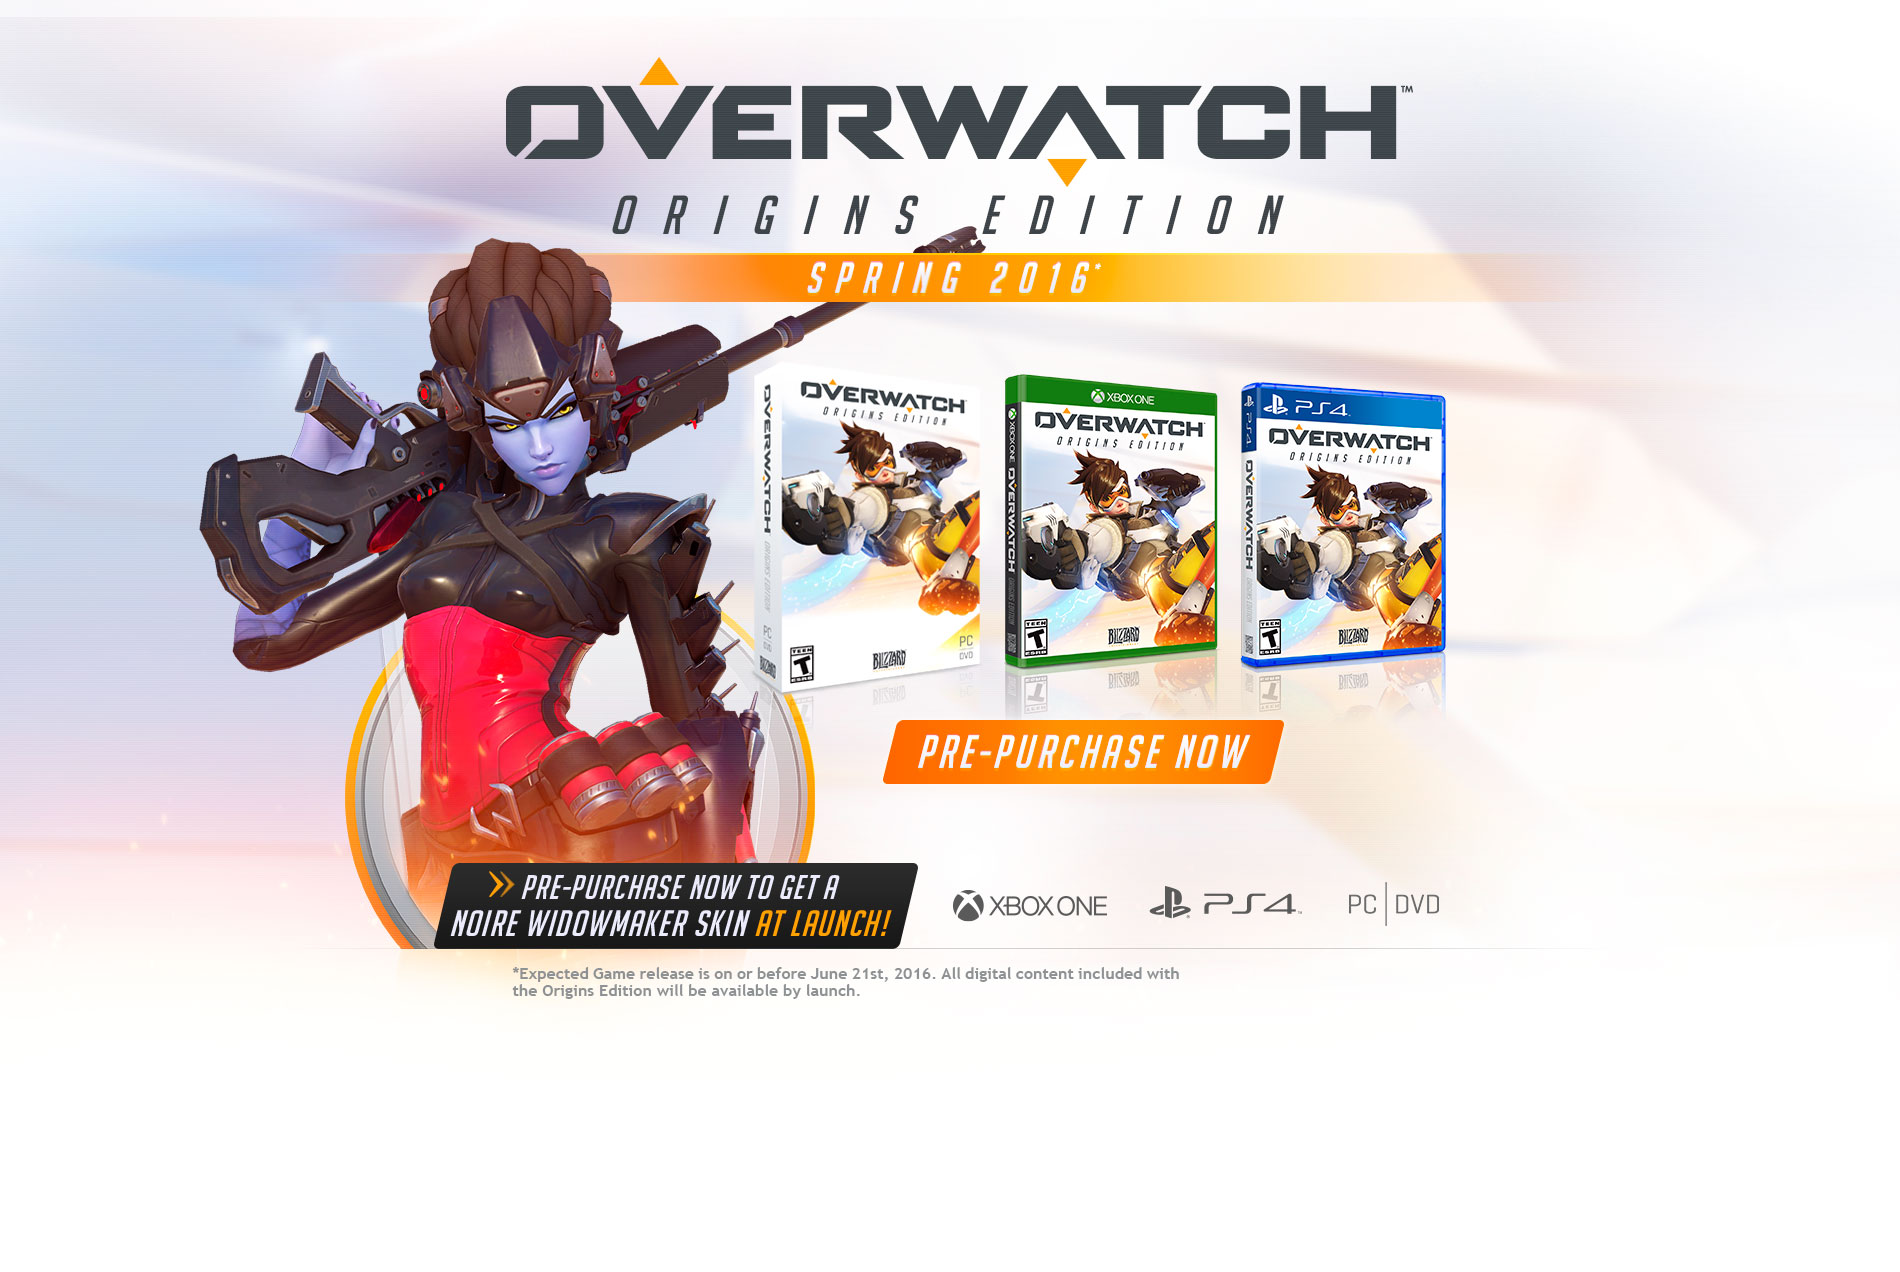 overwatch_console_confirmed_ps4_xbox_one_release_date